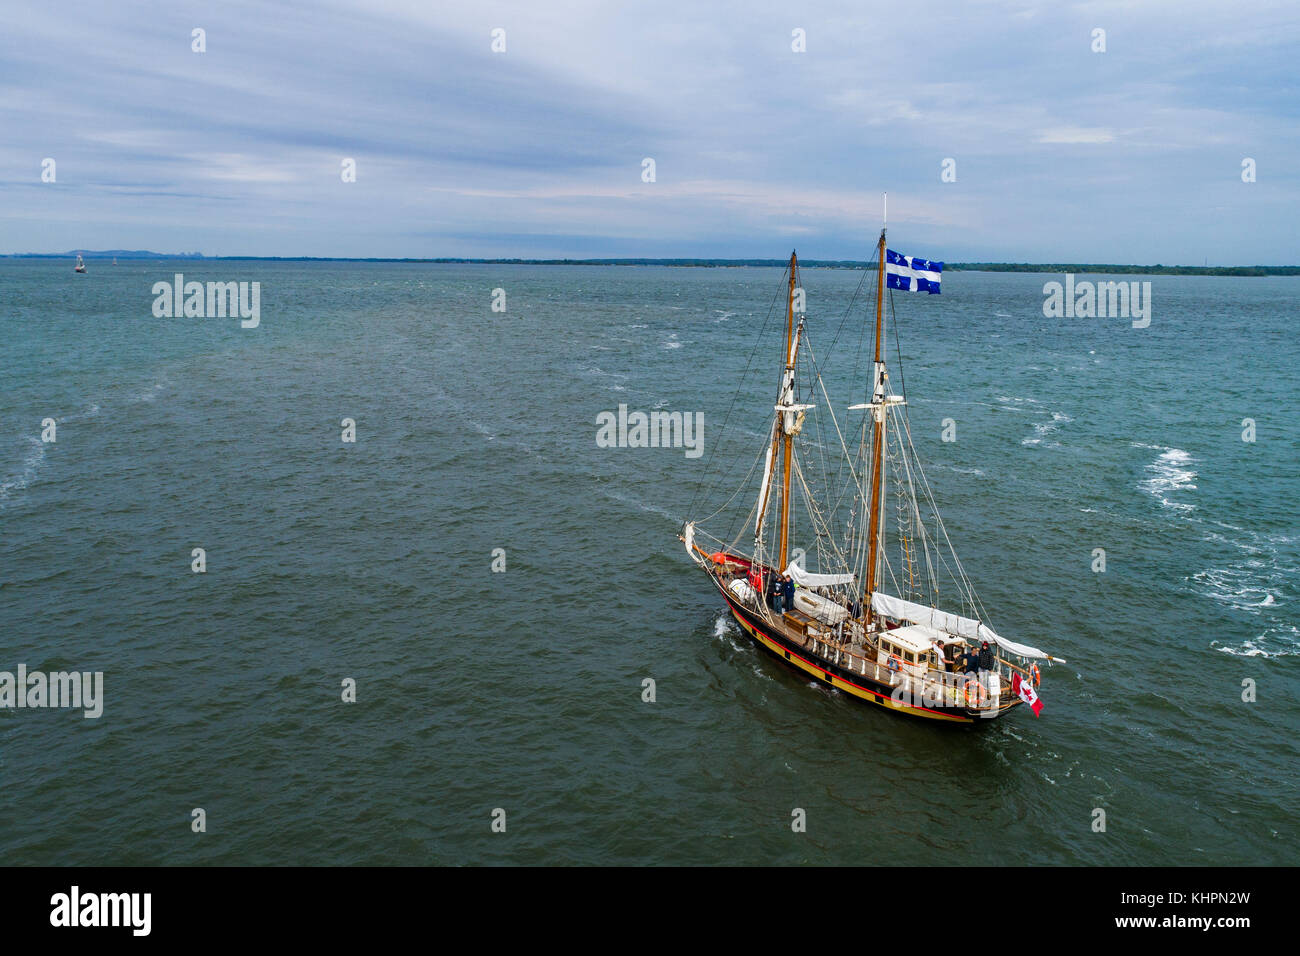 Tall ship approching Port of Montreal on the St-Lawrence River - Stock Image